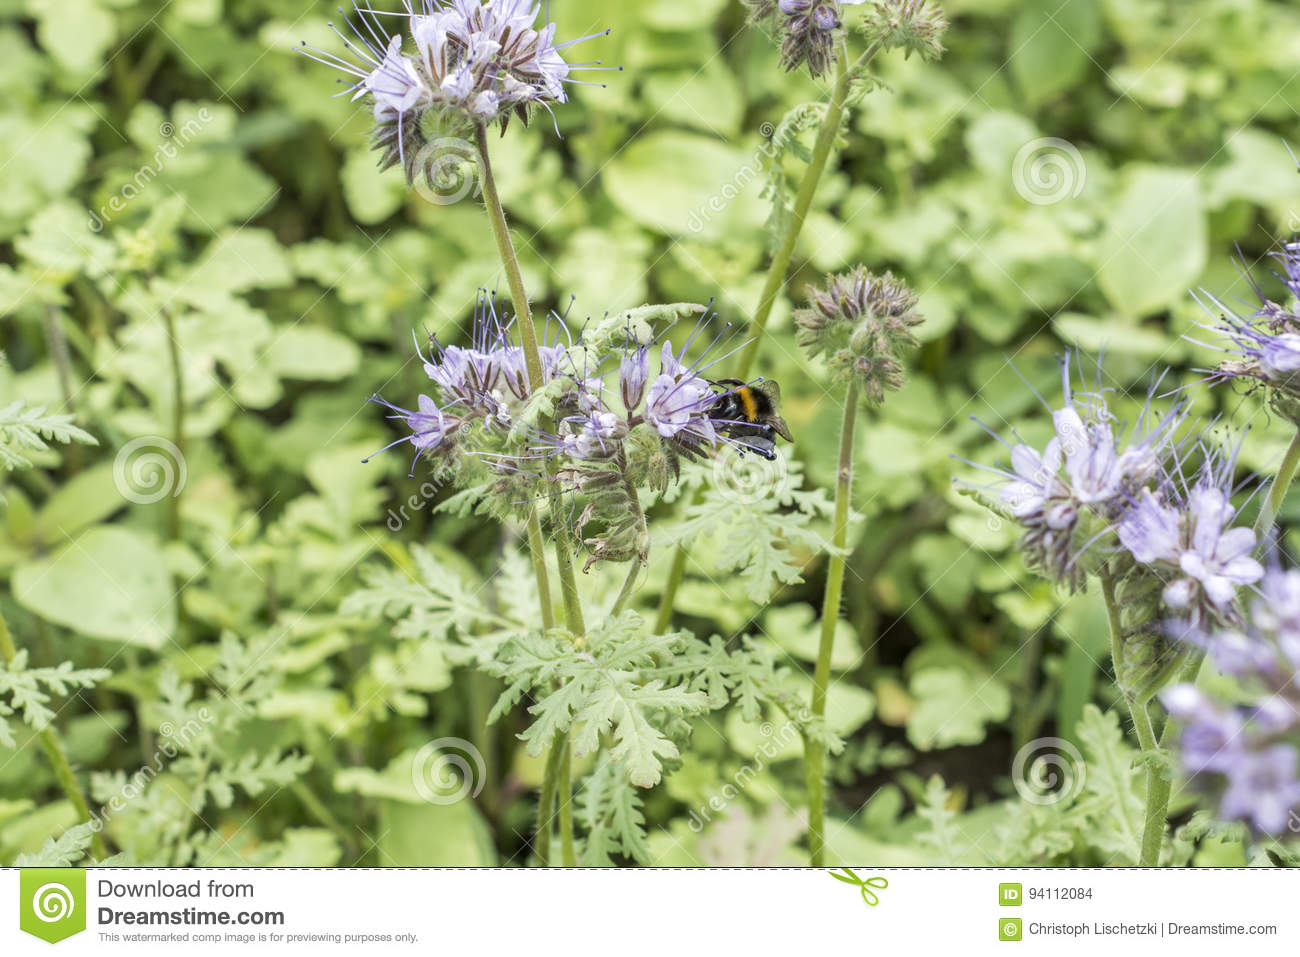 hummel closeu hummel auf phacelia tanacetifolia honiganlage f r bienen und insekt stockfoto. Black Bedroom Furniture Sets. Home Design Ideas